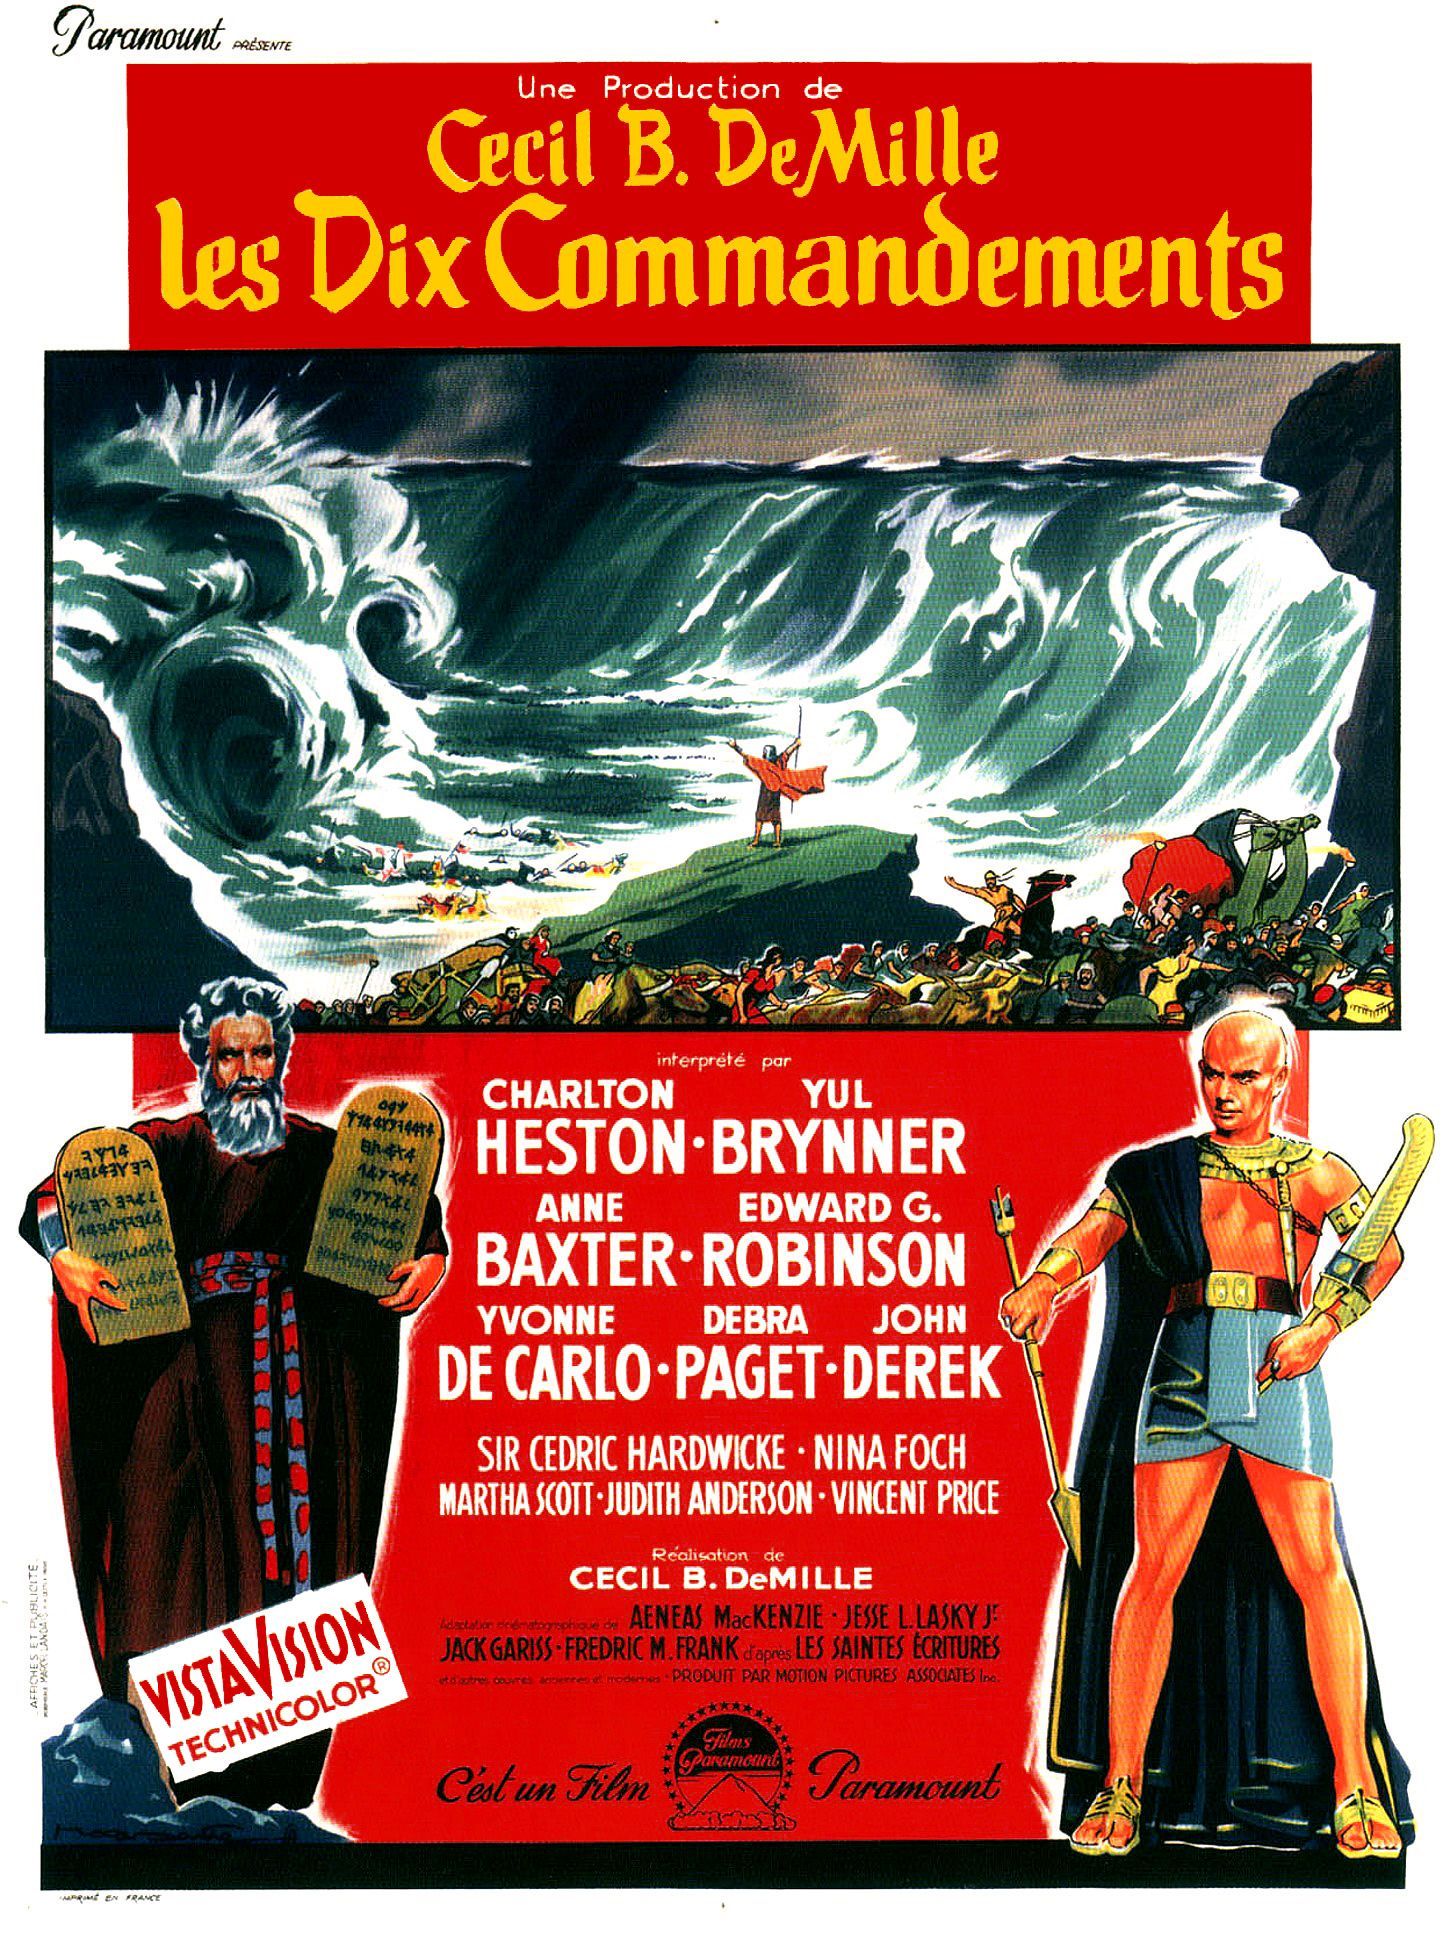 les dix commandements film 1956 senscritique. Black Bedroom Furniture Sets. Home Design Ideas